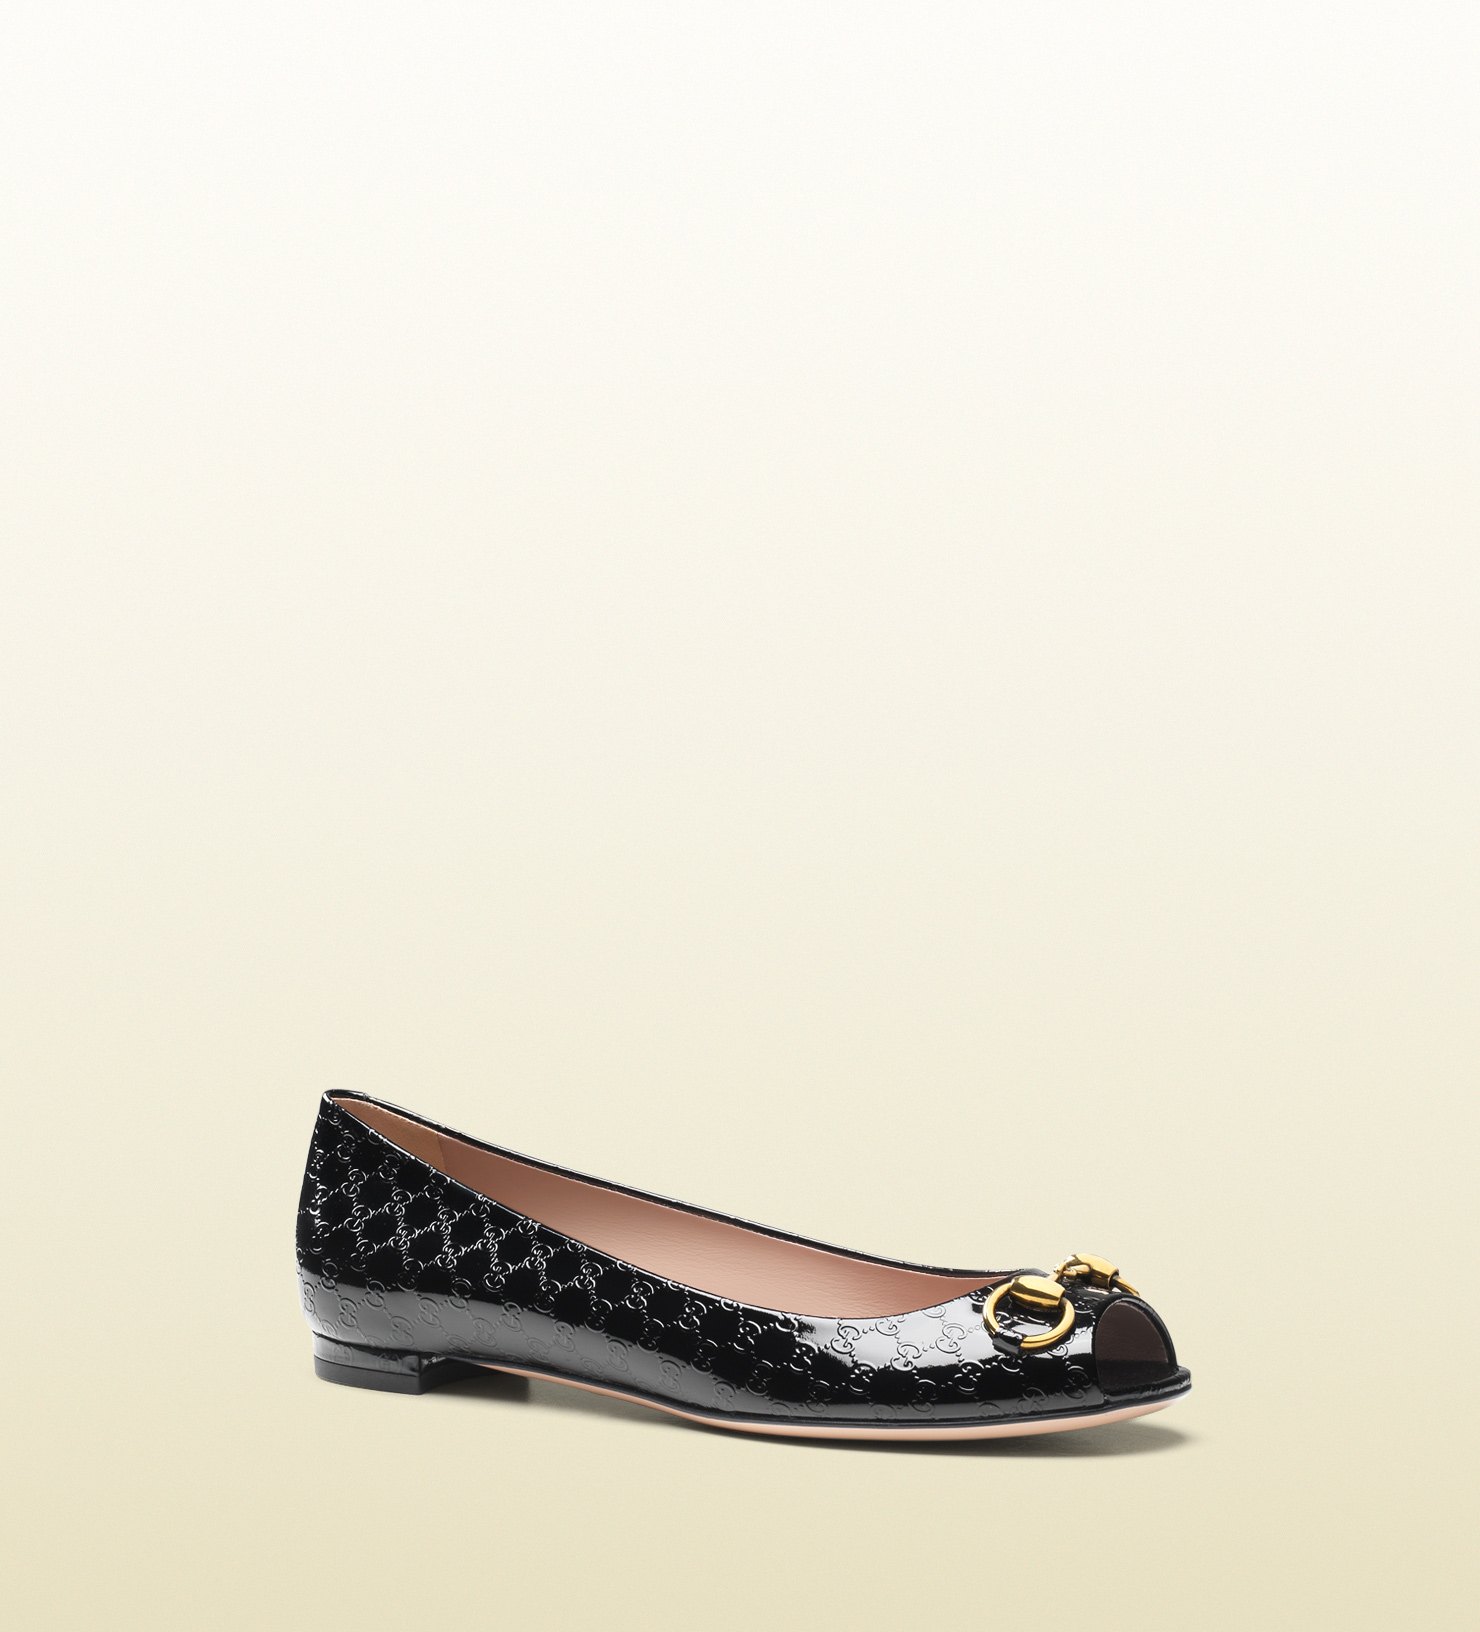 1ff4a1a0e Gucci Jolene Patent Leather Ballet Flat in Black - Lyst